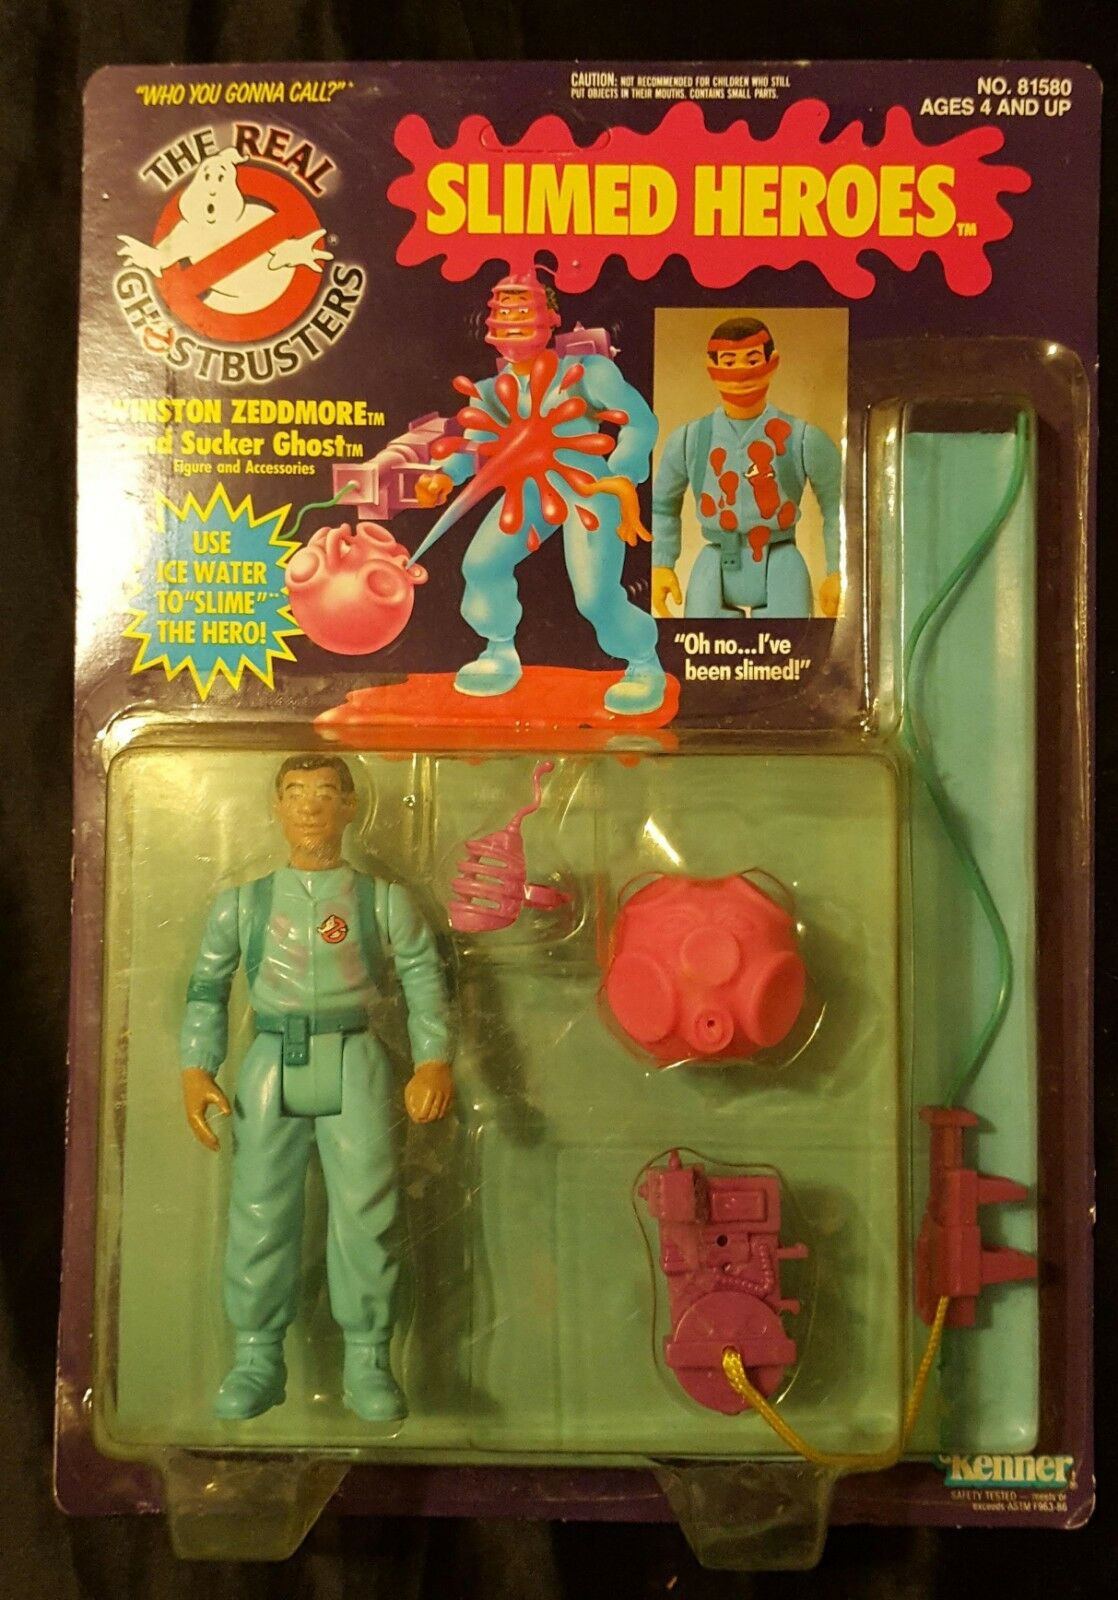 The Real Ghostbusters, Slimed Heroes: